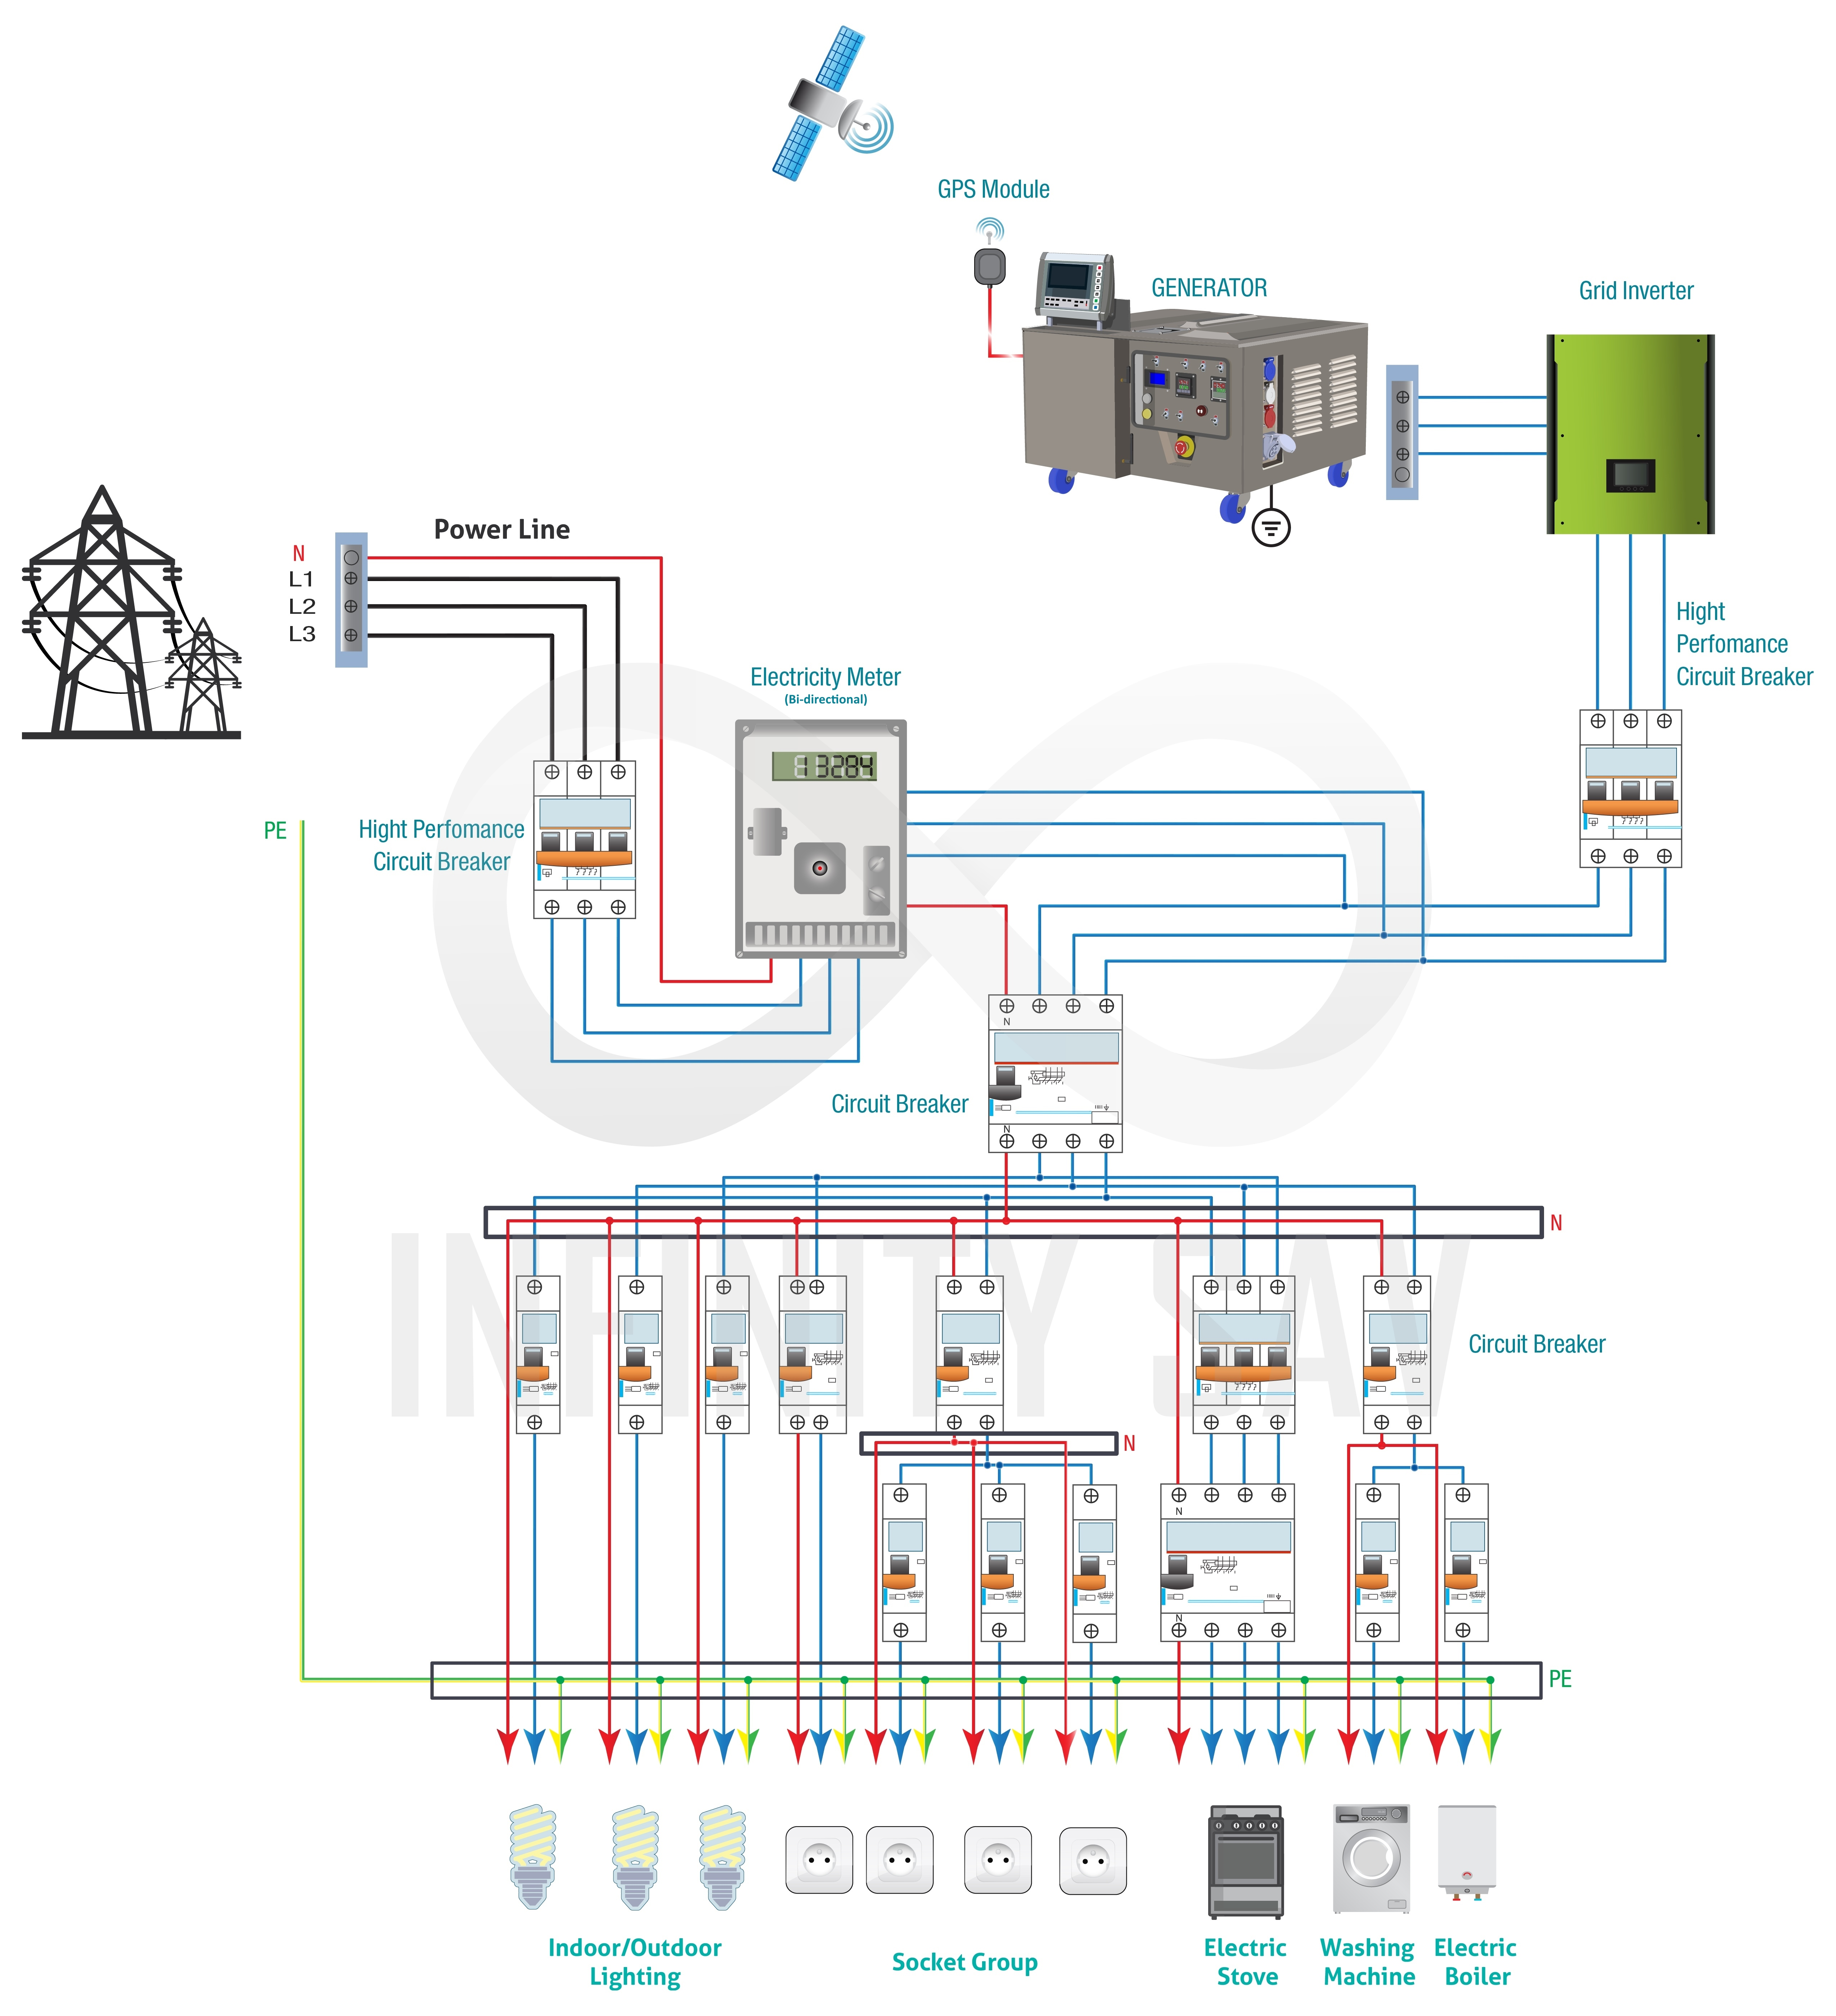 Magnetic Generator Infinity Sav Wiring Diagram For 2 Way Switch Connecting Portable To Connection With Grid Inverter